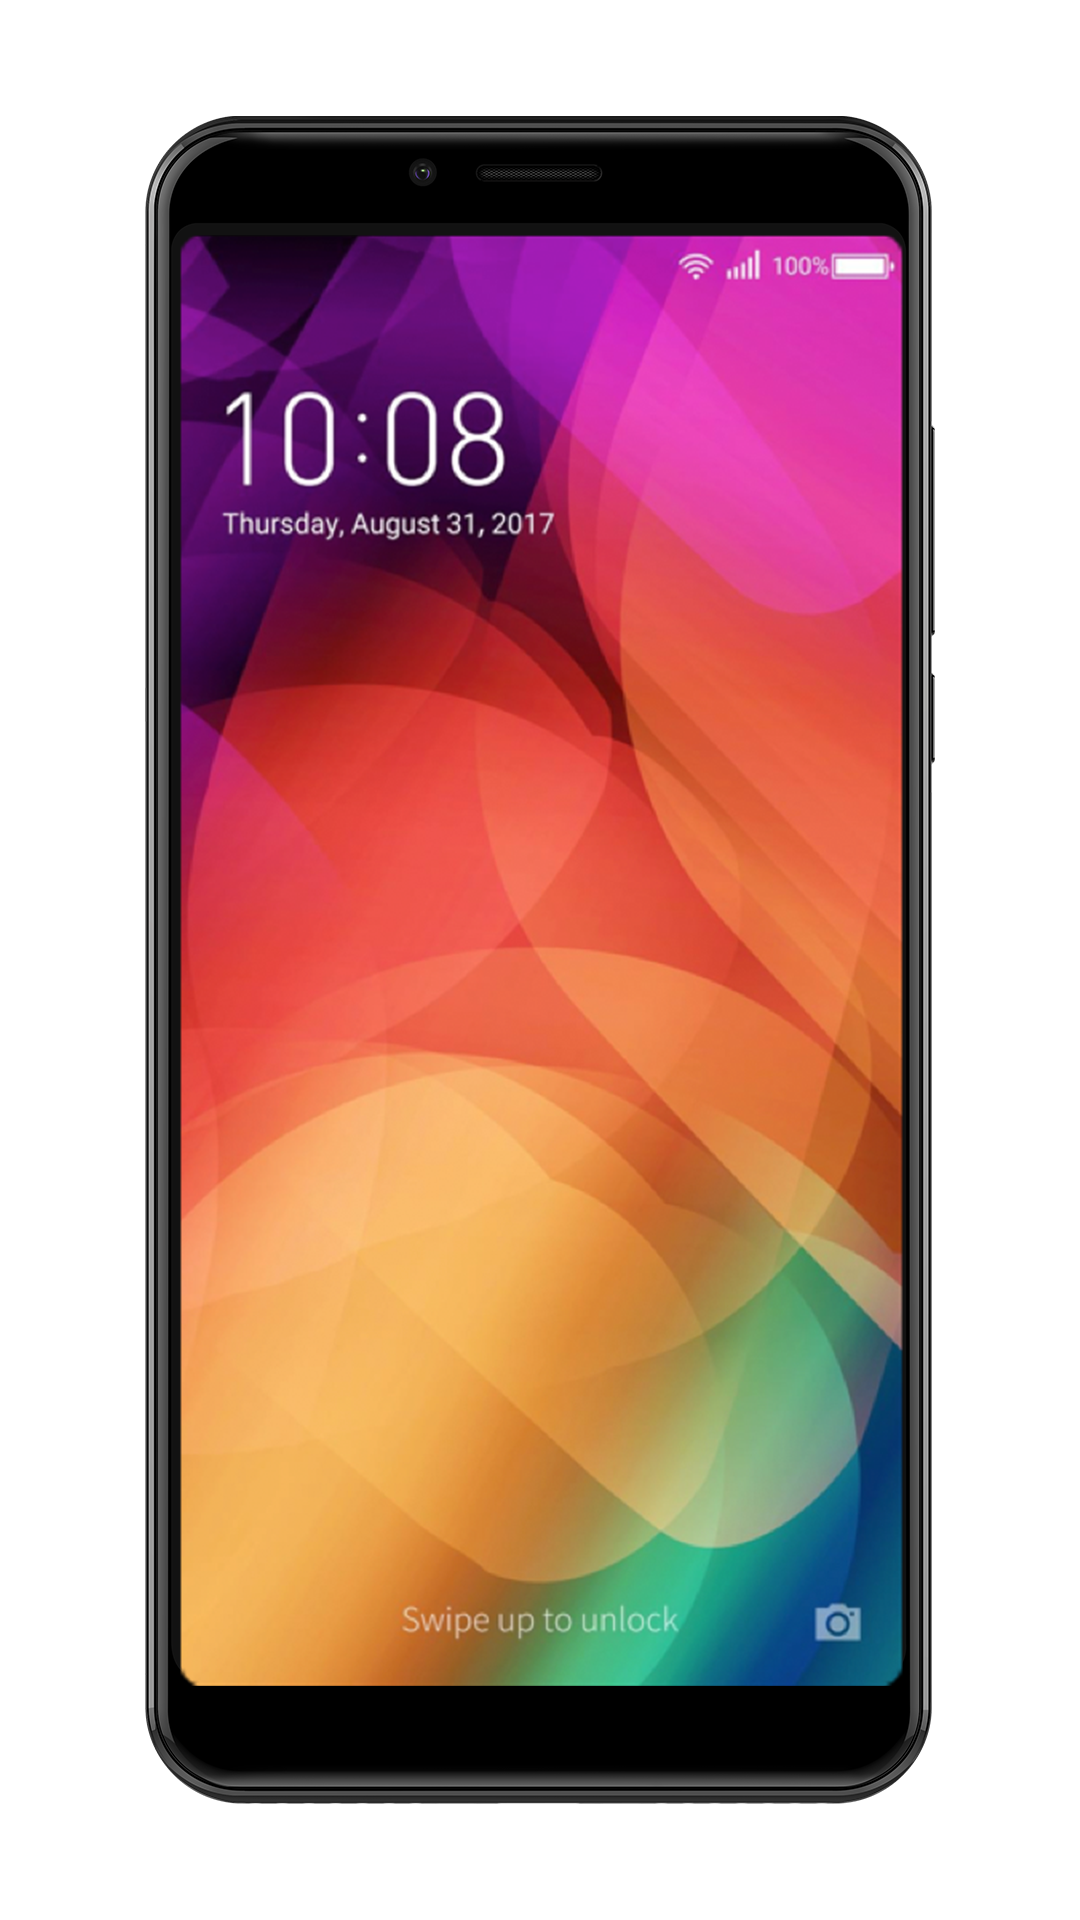 https://assetscdn1.paytm.com/images/catalog/product/M/MO/MOBCOOLPAD-NOTECOOL1028005AD28ED95/62.png